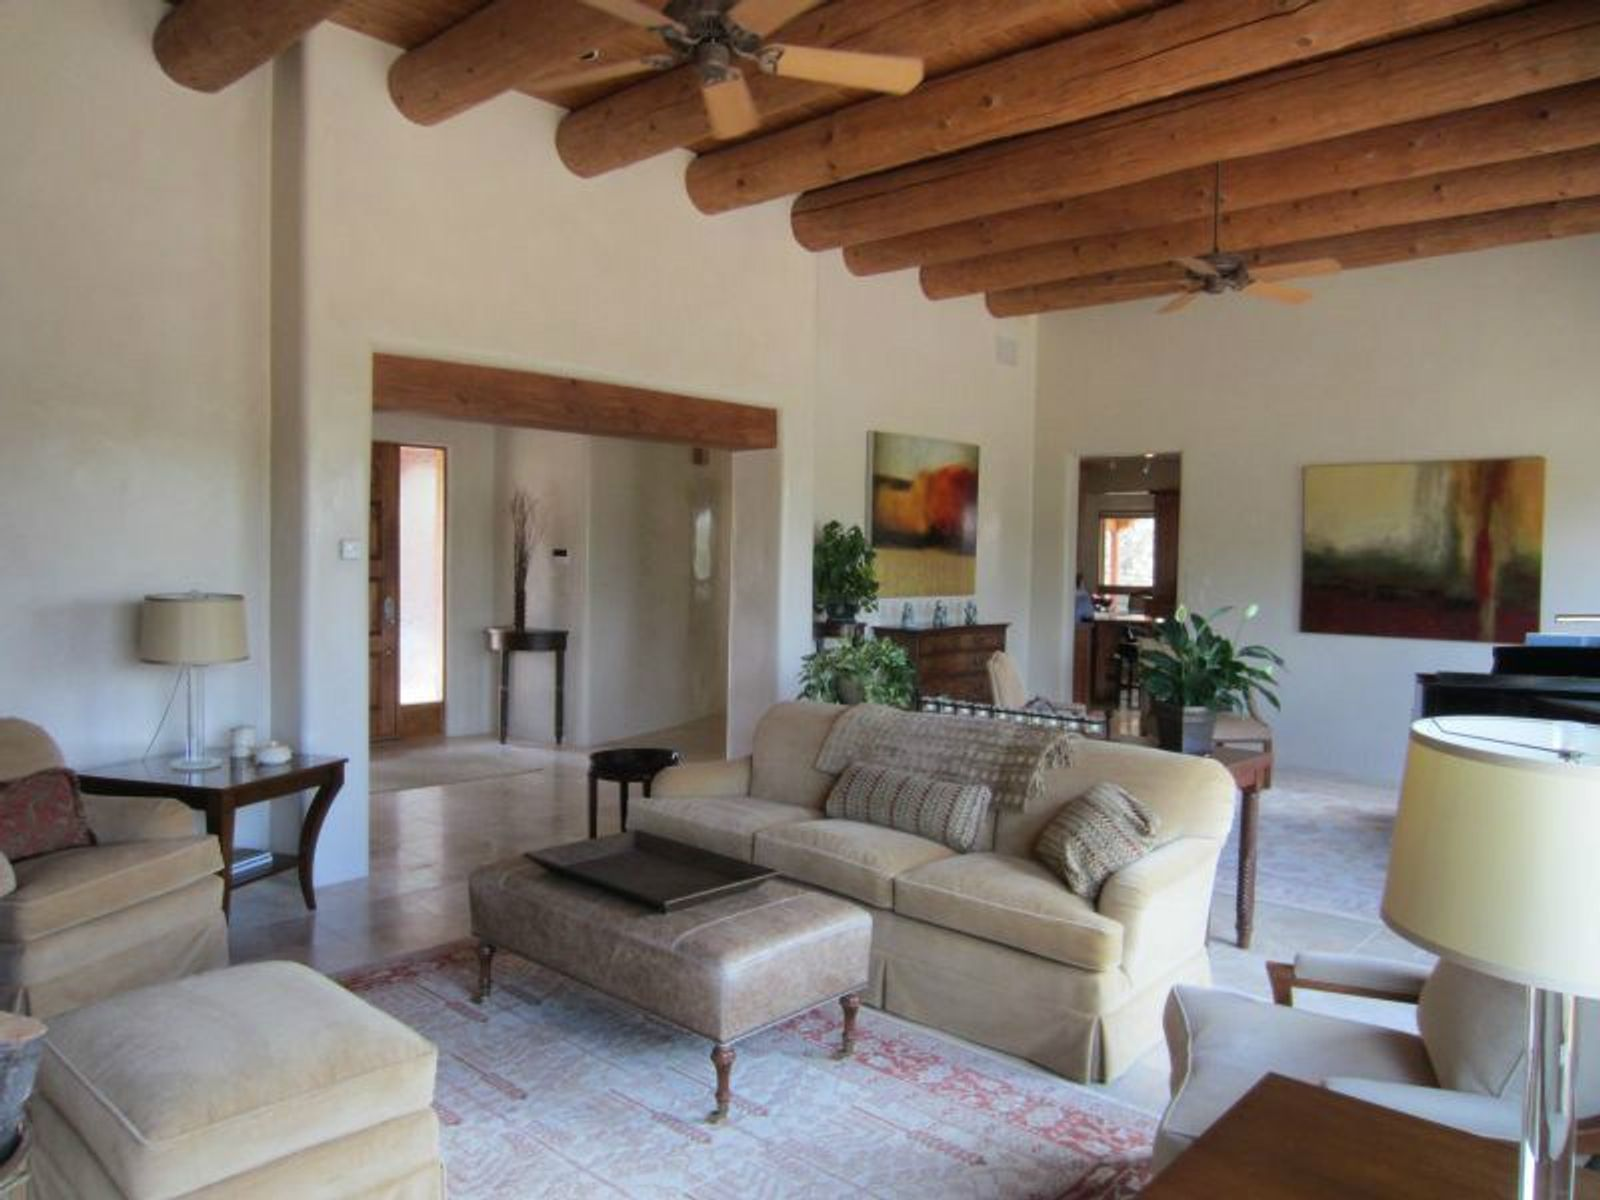 118 East Sunrise Drive, Santa Fe NM Single Family Home - Santa Fe Real Estate